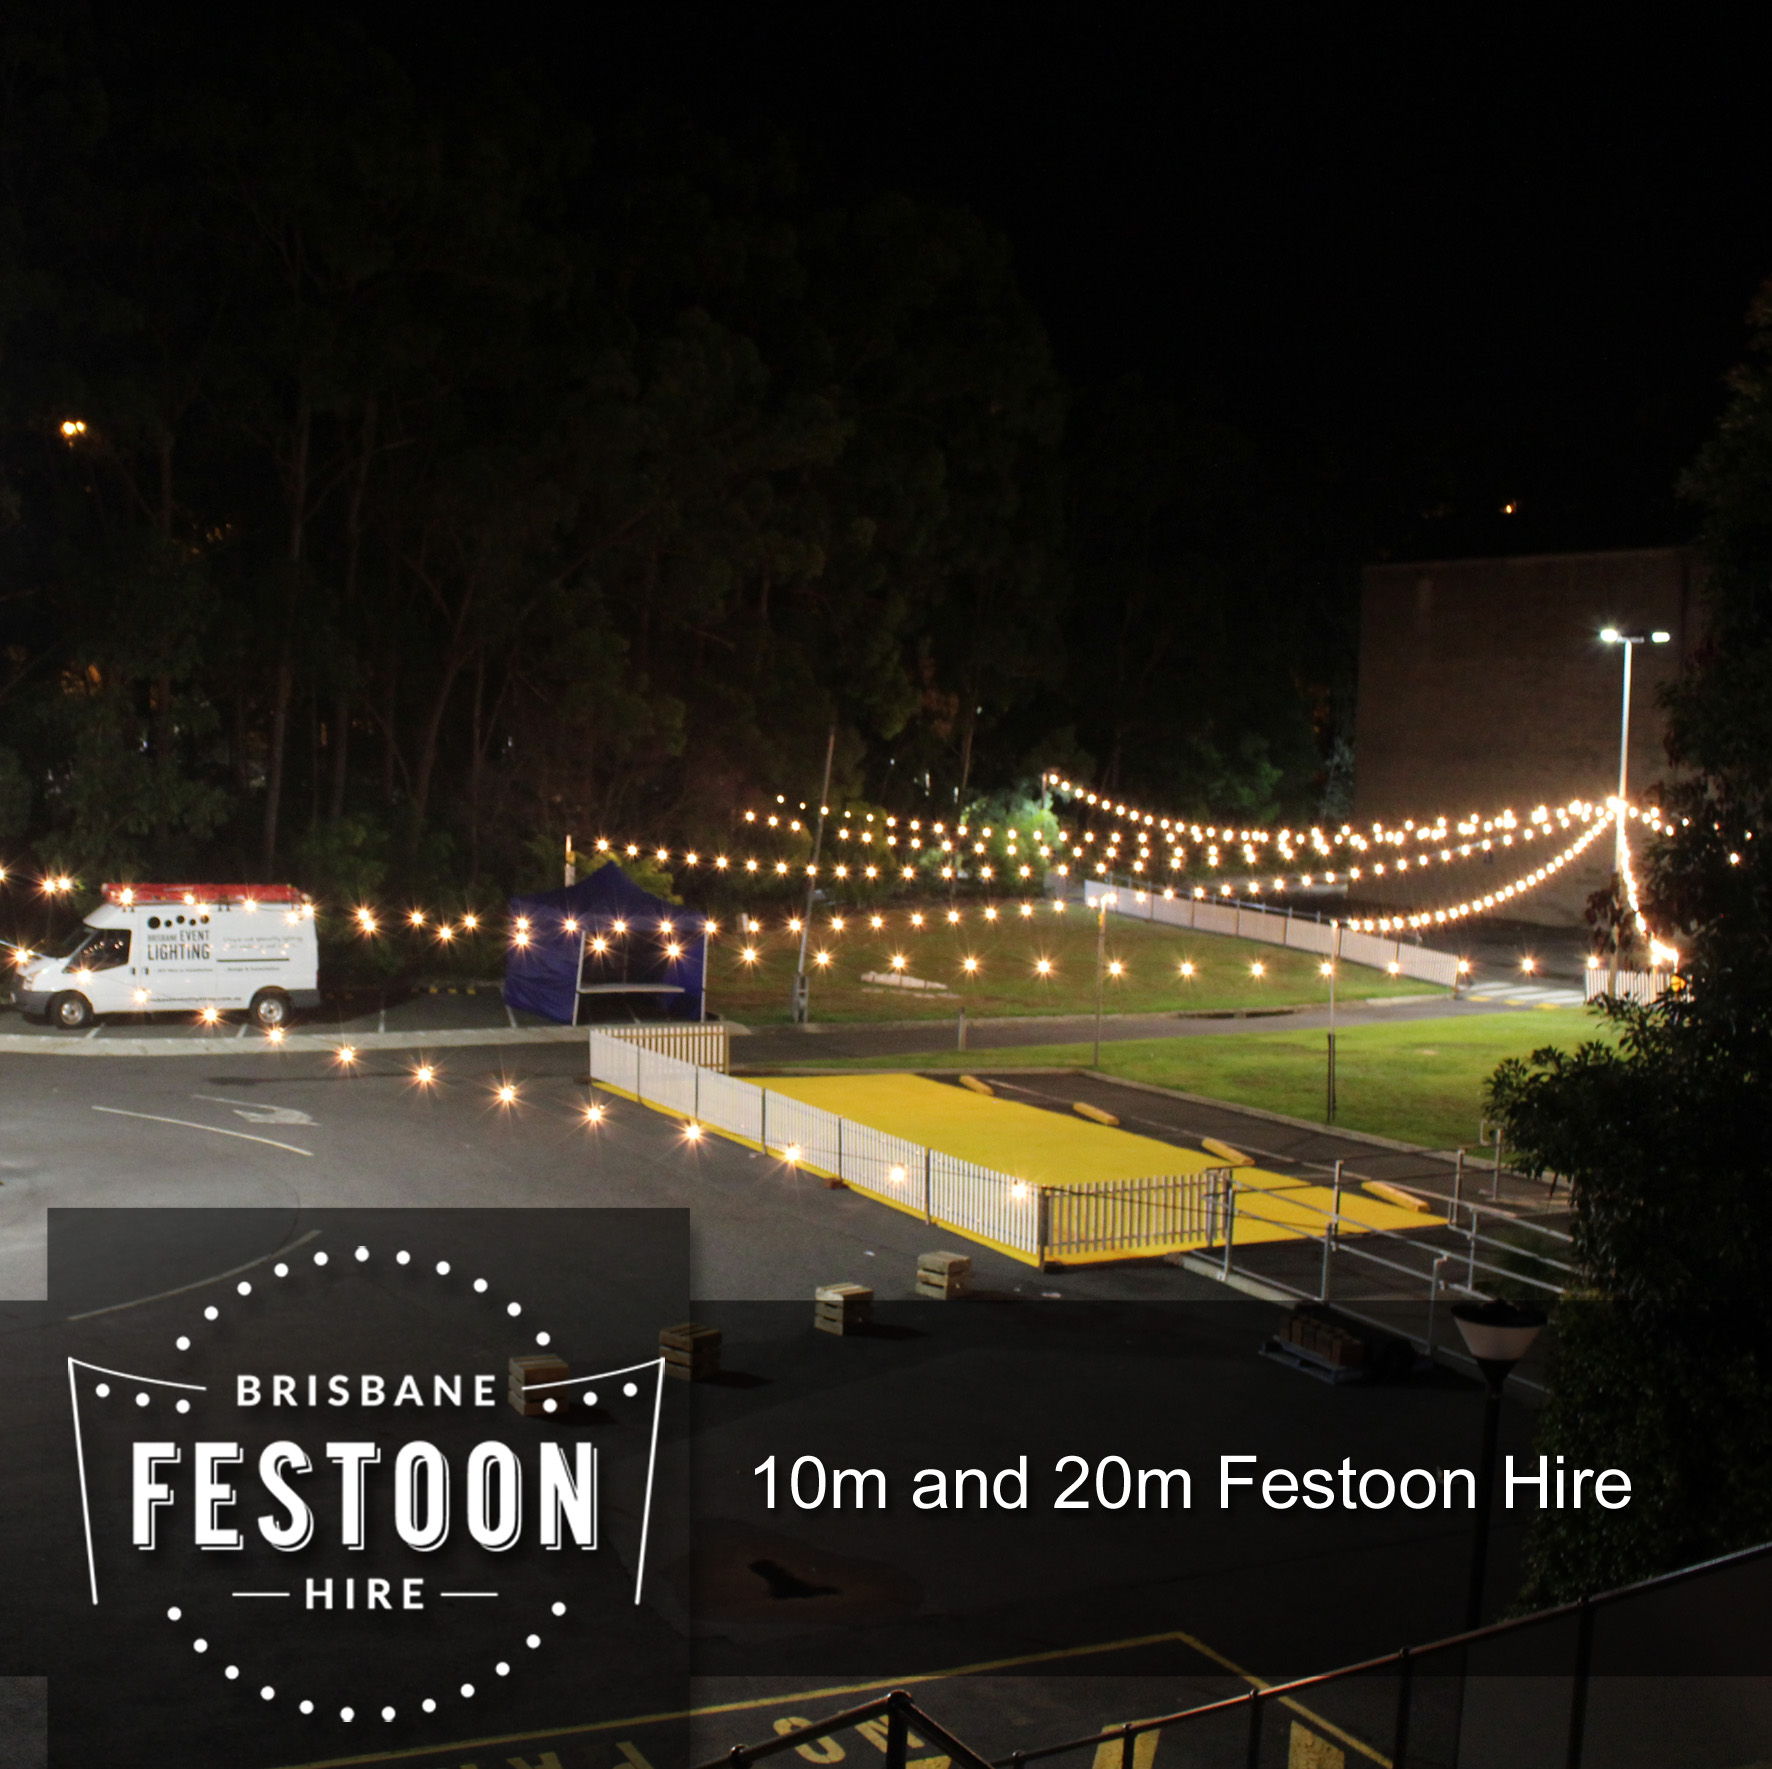 Brisbane Festoon Hire - 10m and 20m Festoon Hire 3.jpg